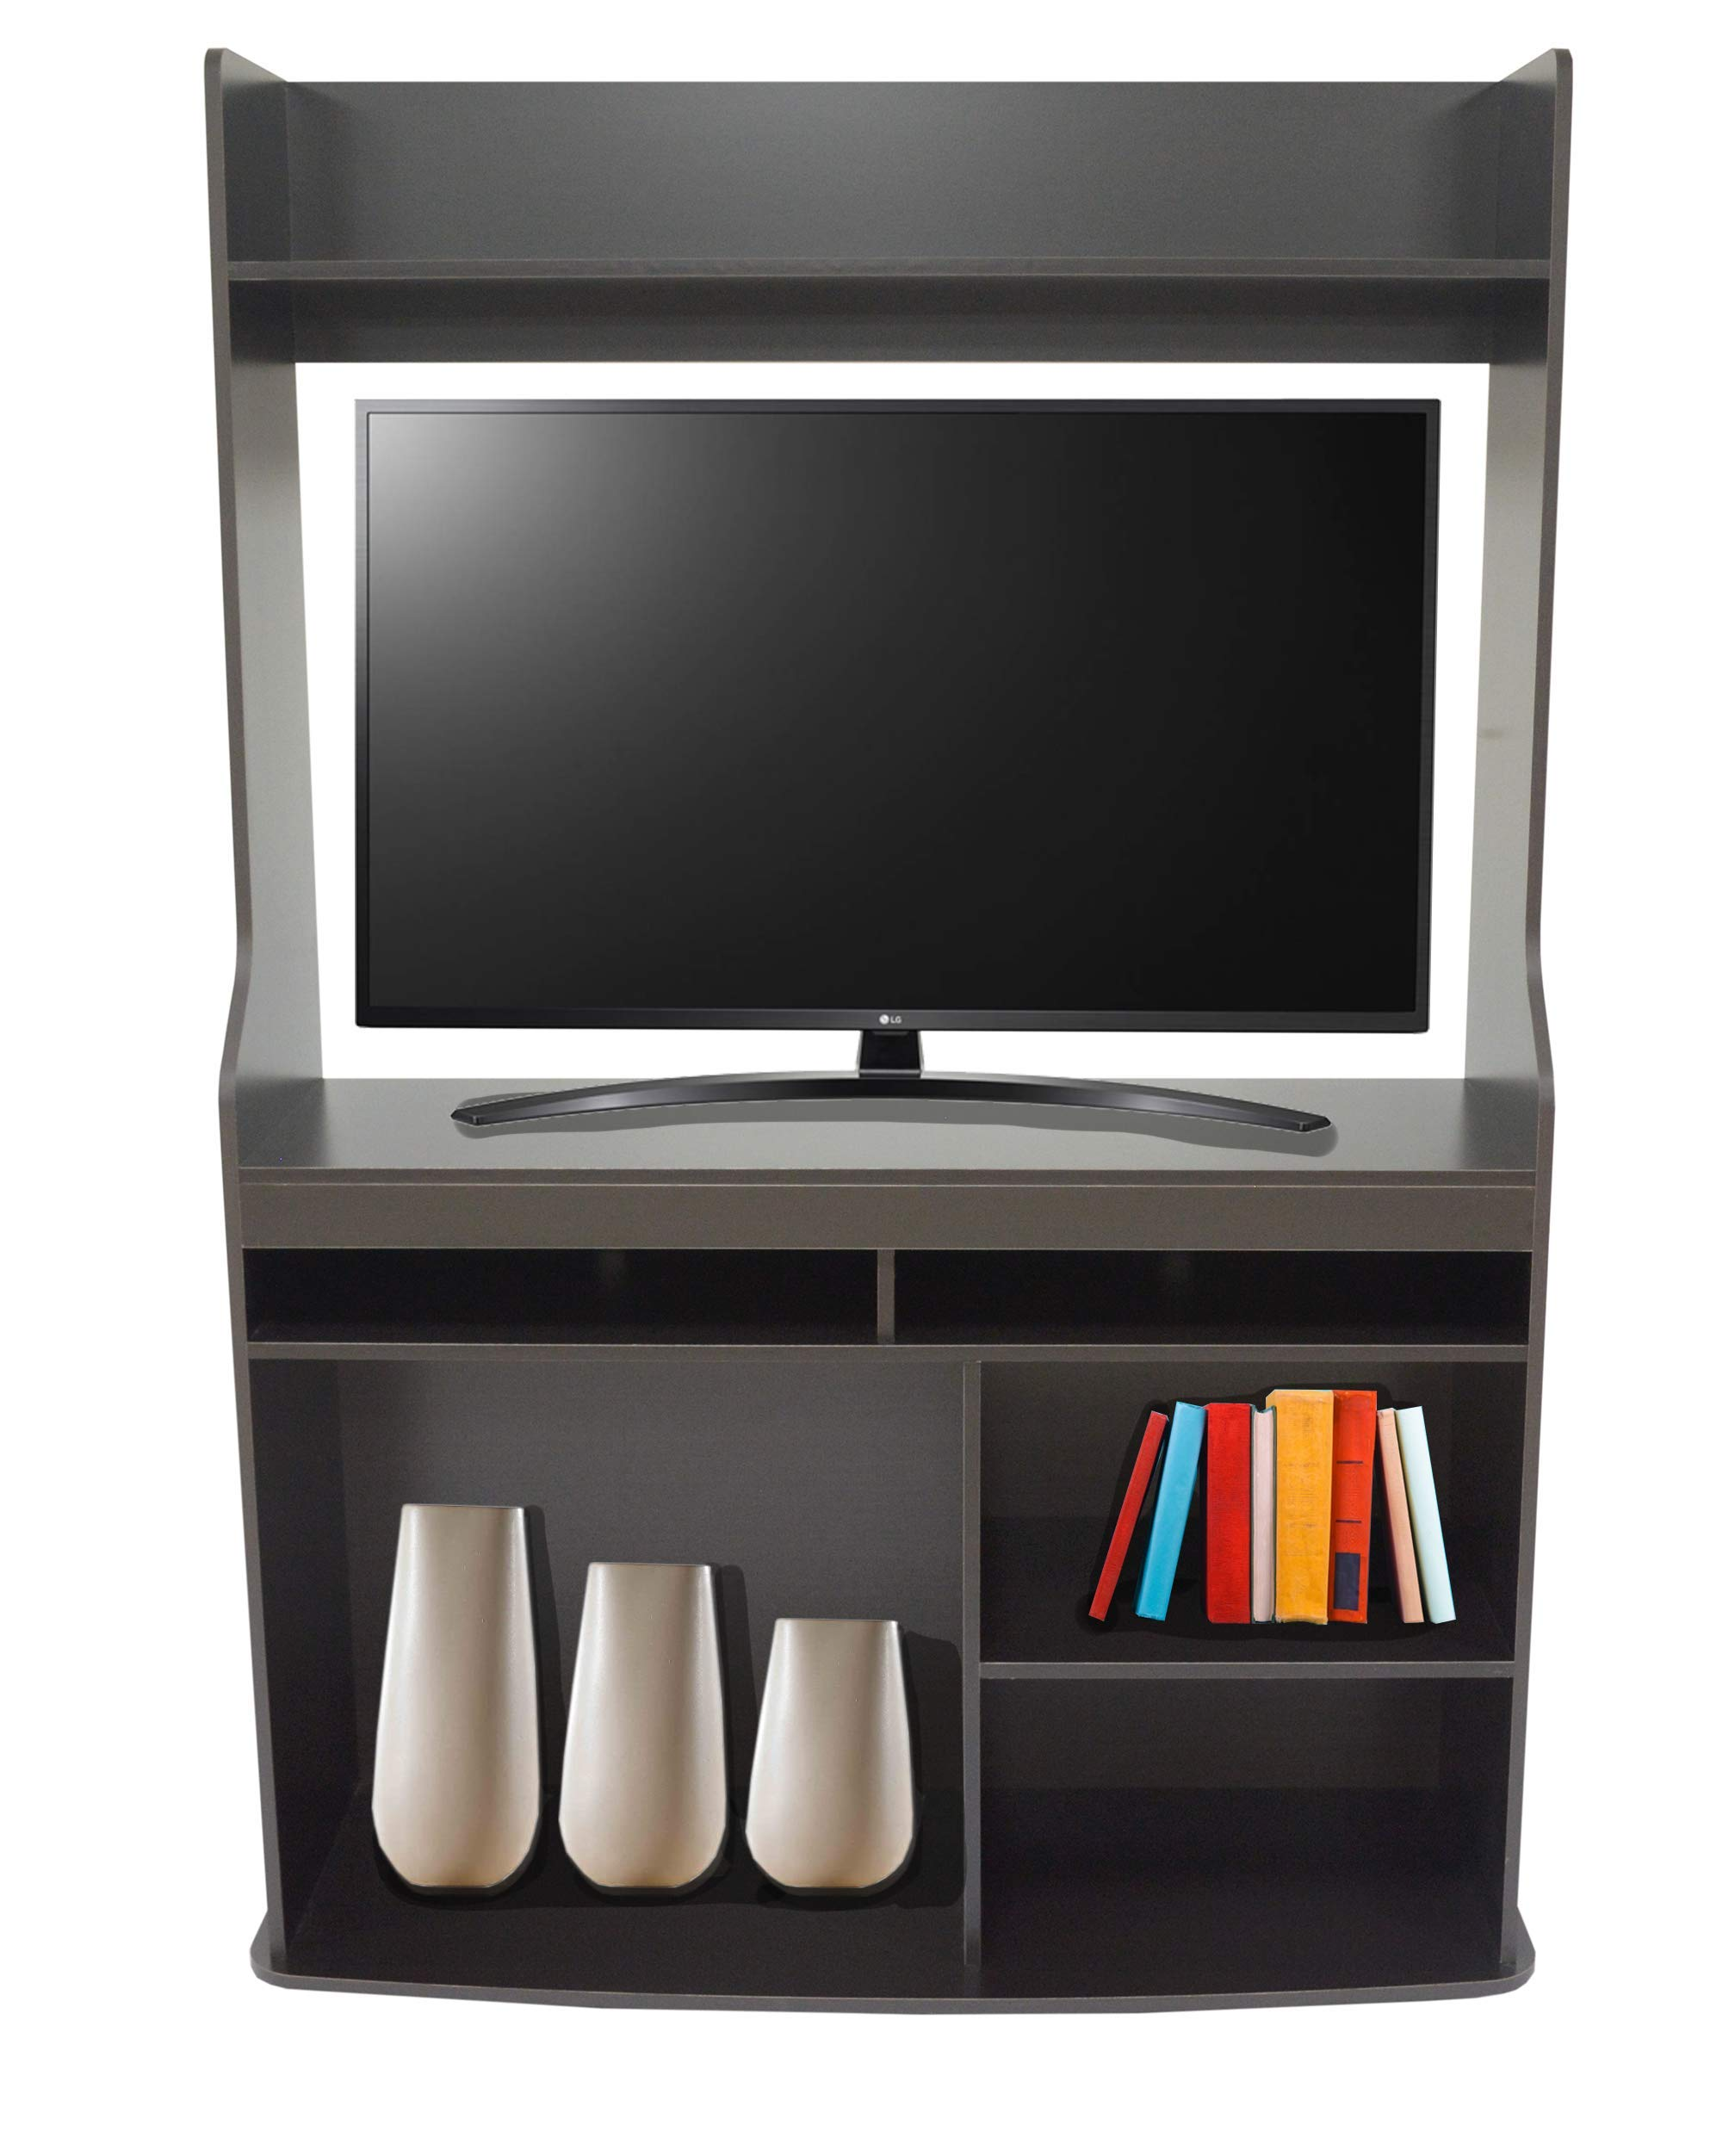 Pro Design Tv Meubel.Amazon Com Touchstone 72008 Elevate Tv Lift Cabinet Tvs Up To